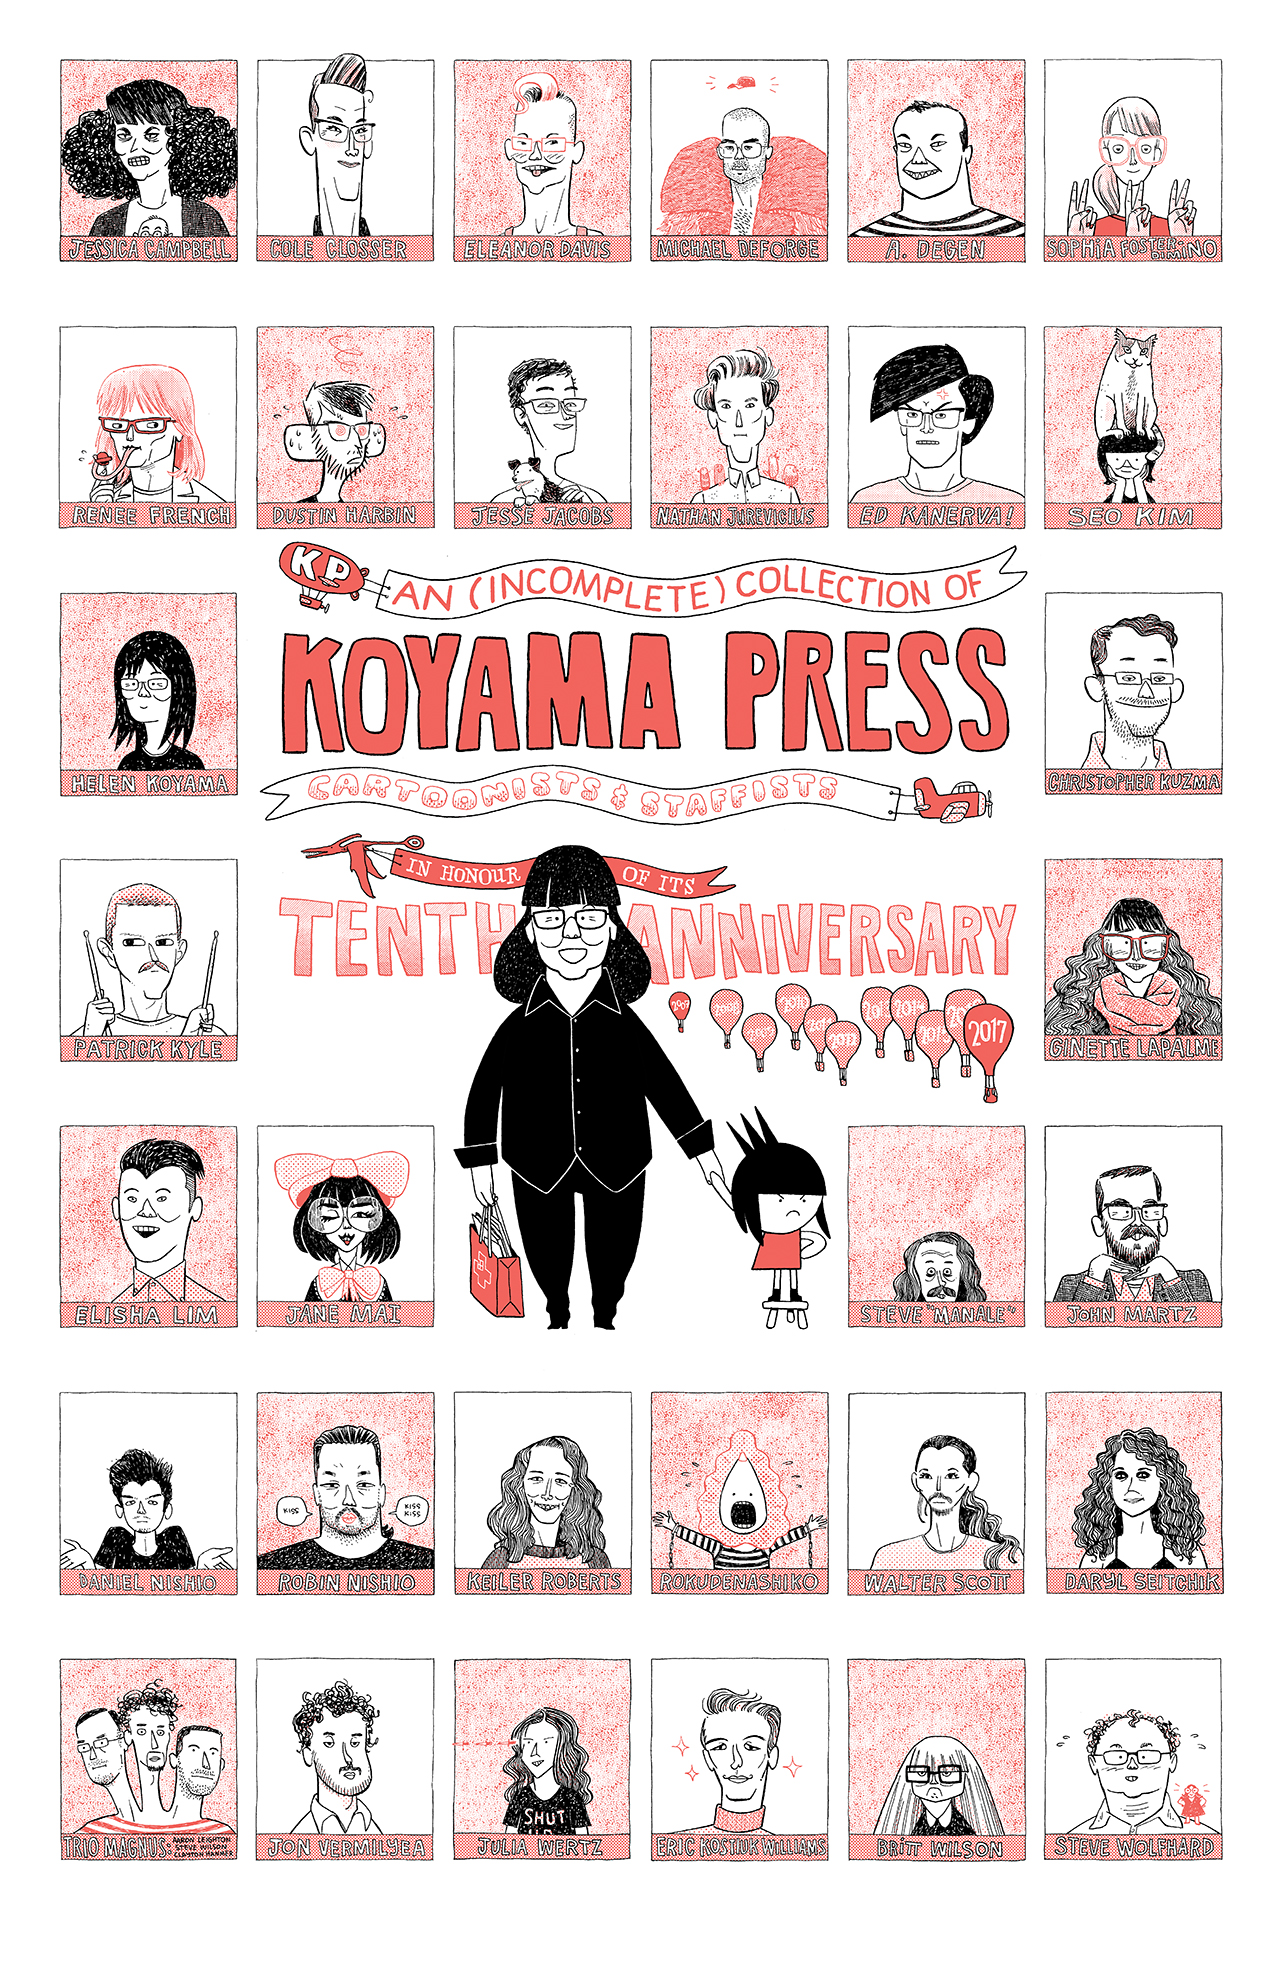 Illustrations of Koyama Press artists and contributors with Annie Koyama holding hands with Kickass Annie at the centre